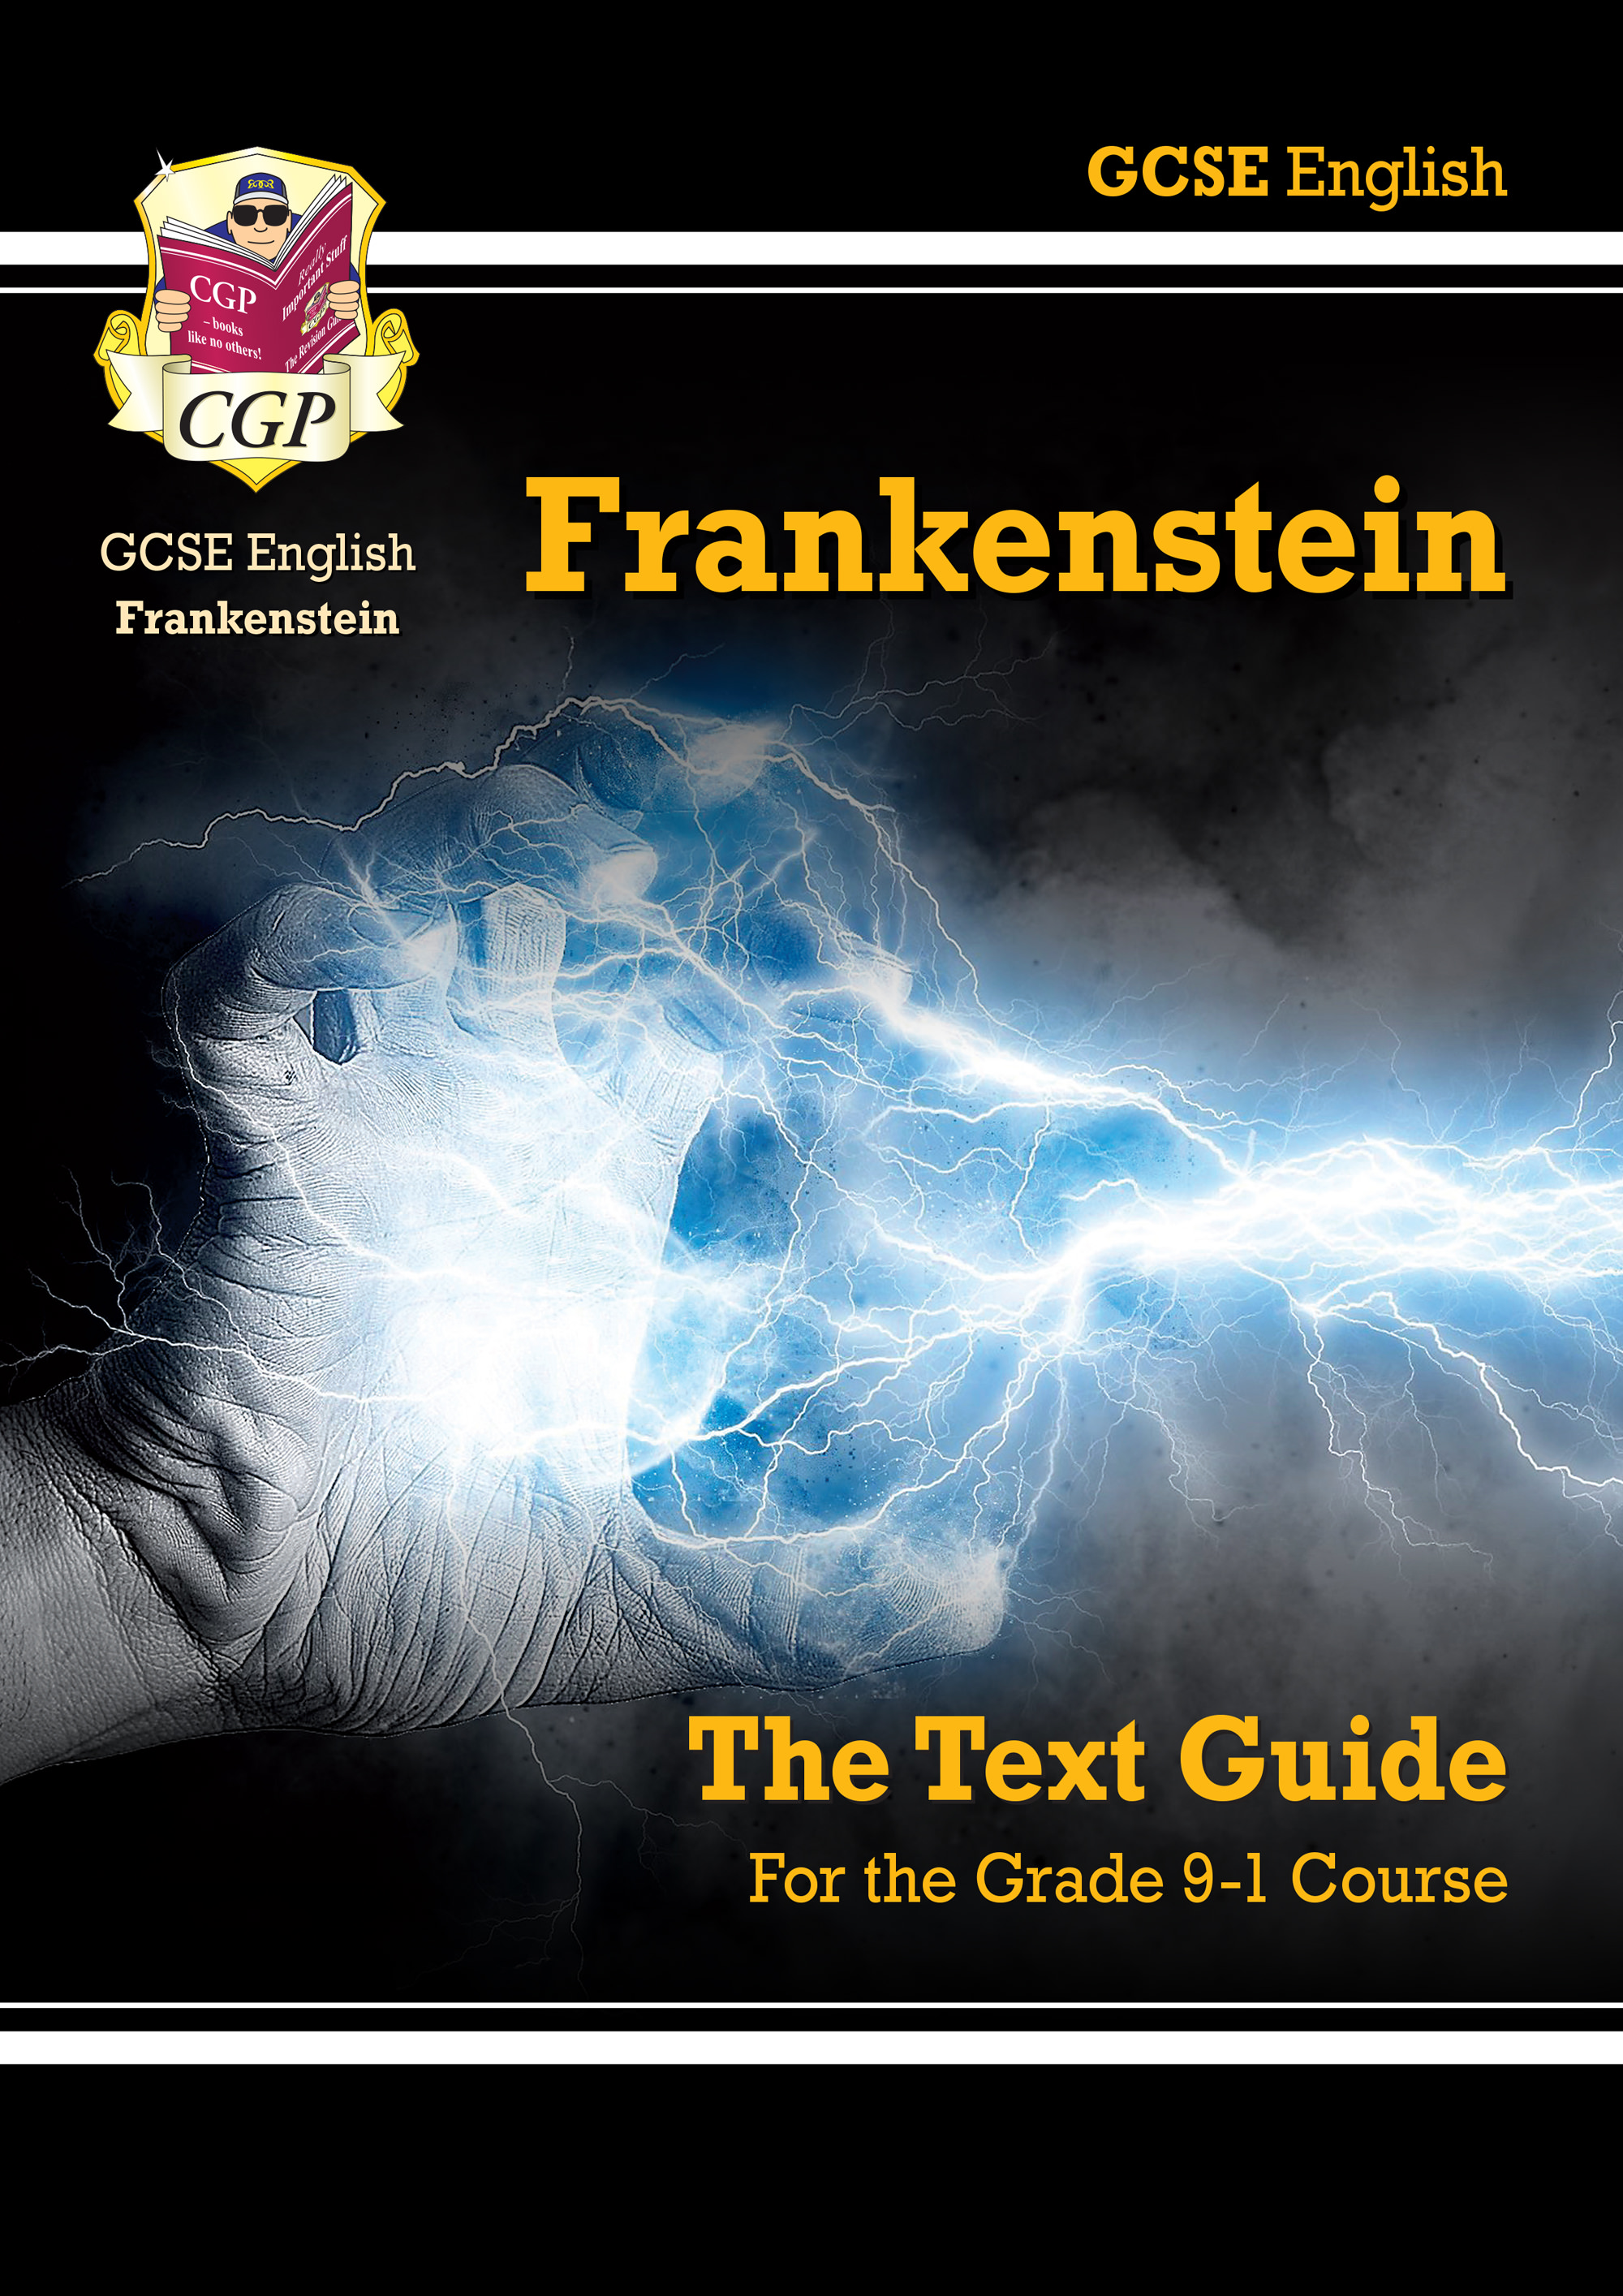 ETF41 - Grade 9-1 GCSE English Text Guide - Frankenstein